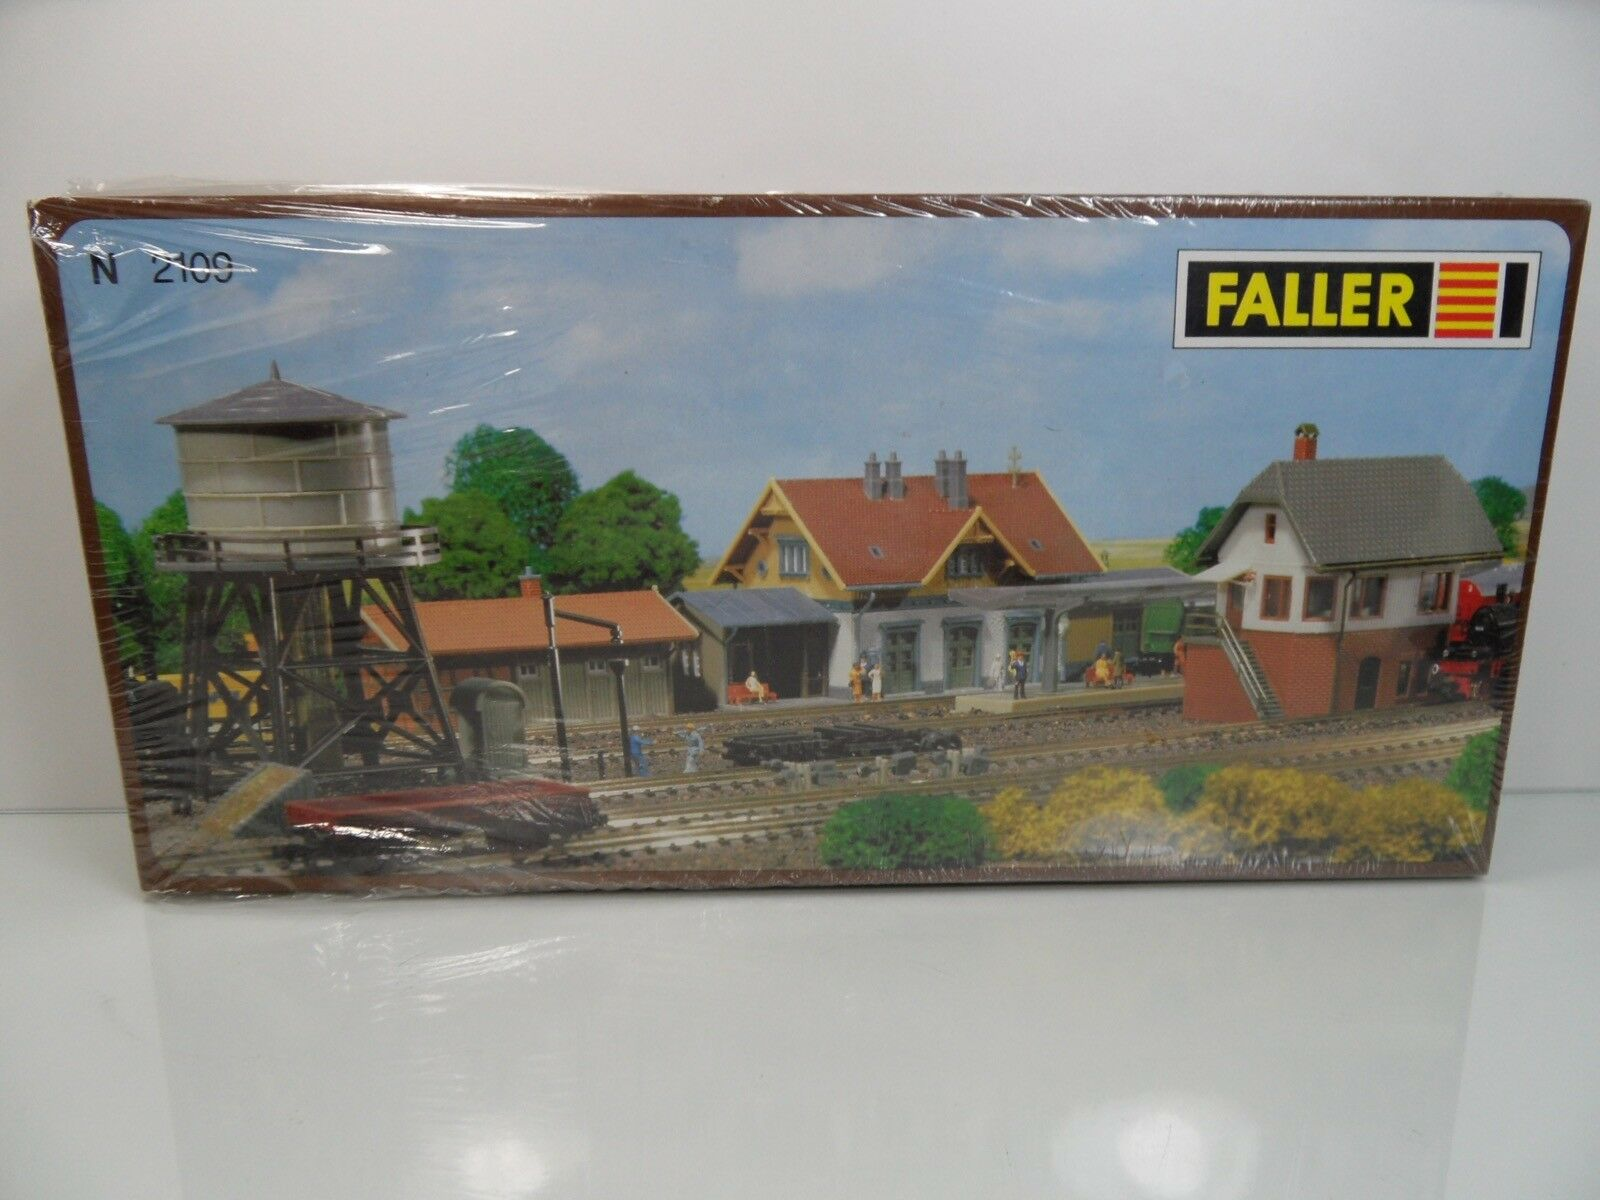 Faller 2109 - Spur N - Bahnbauten-Set - TOP in OVP  -  9407